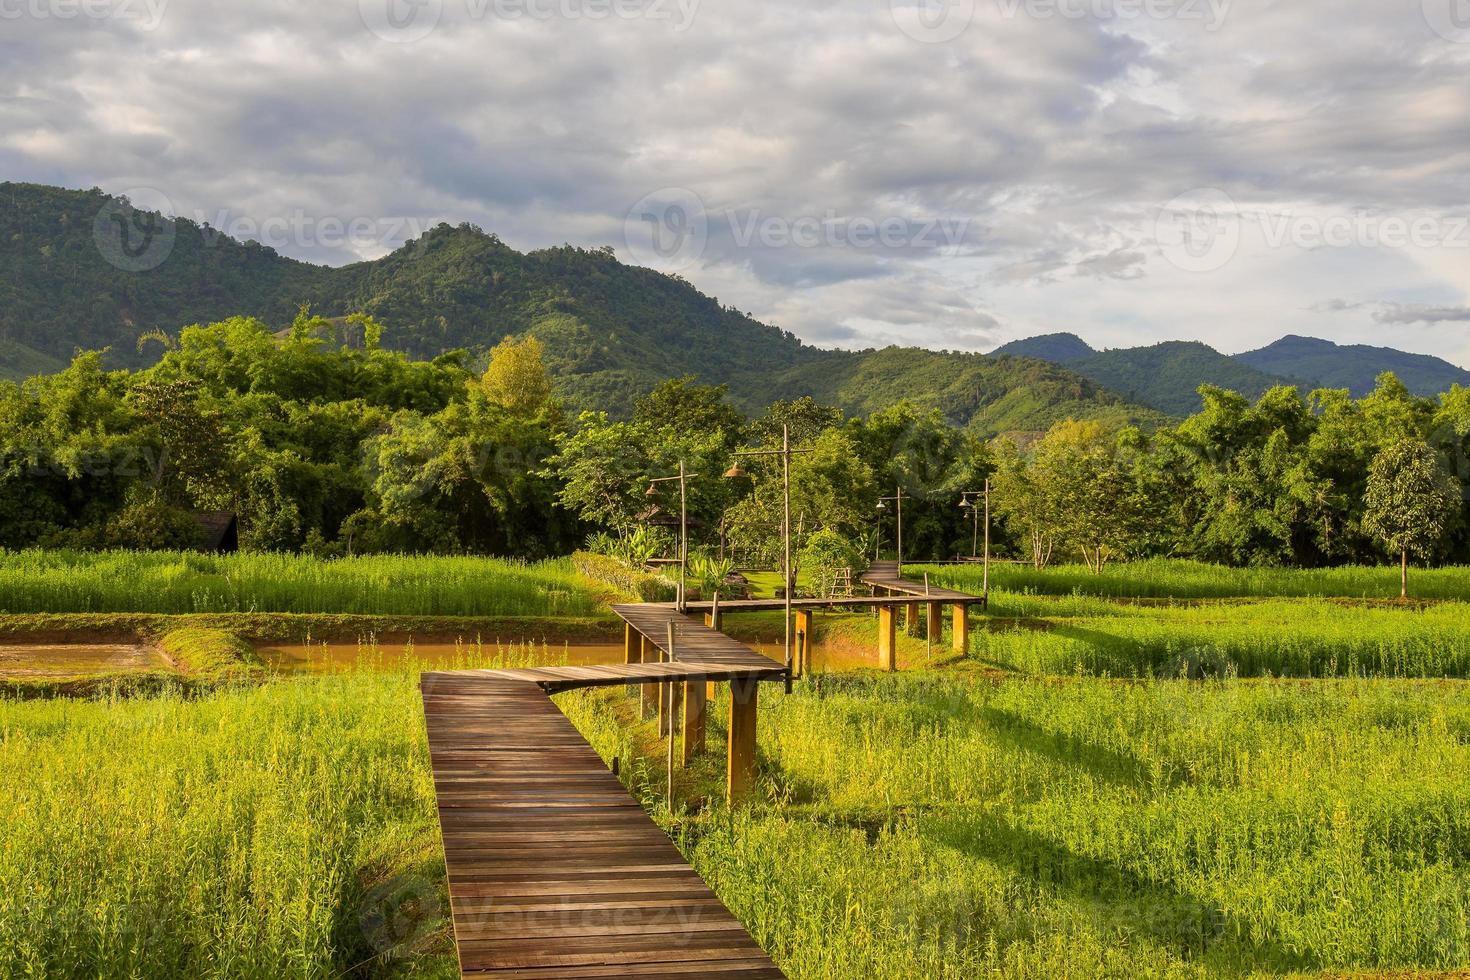 Wood path over rice field and through the mountain photo